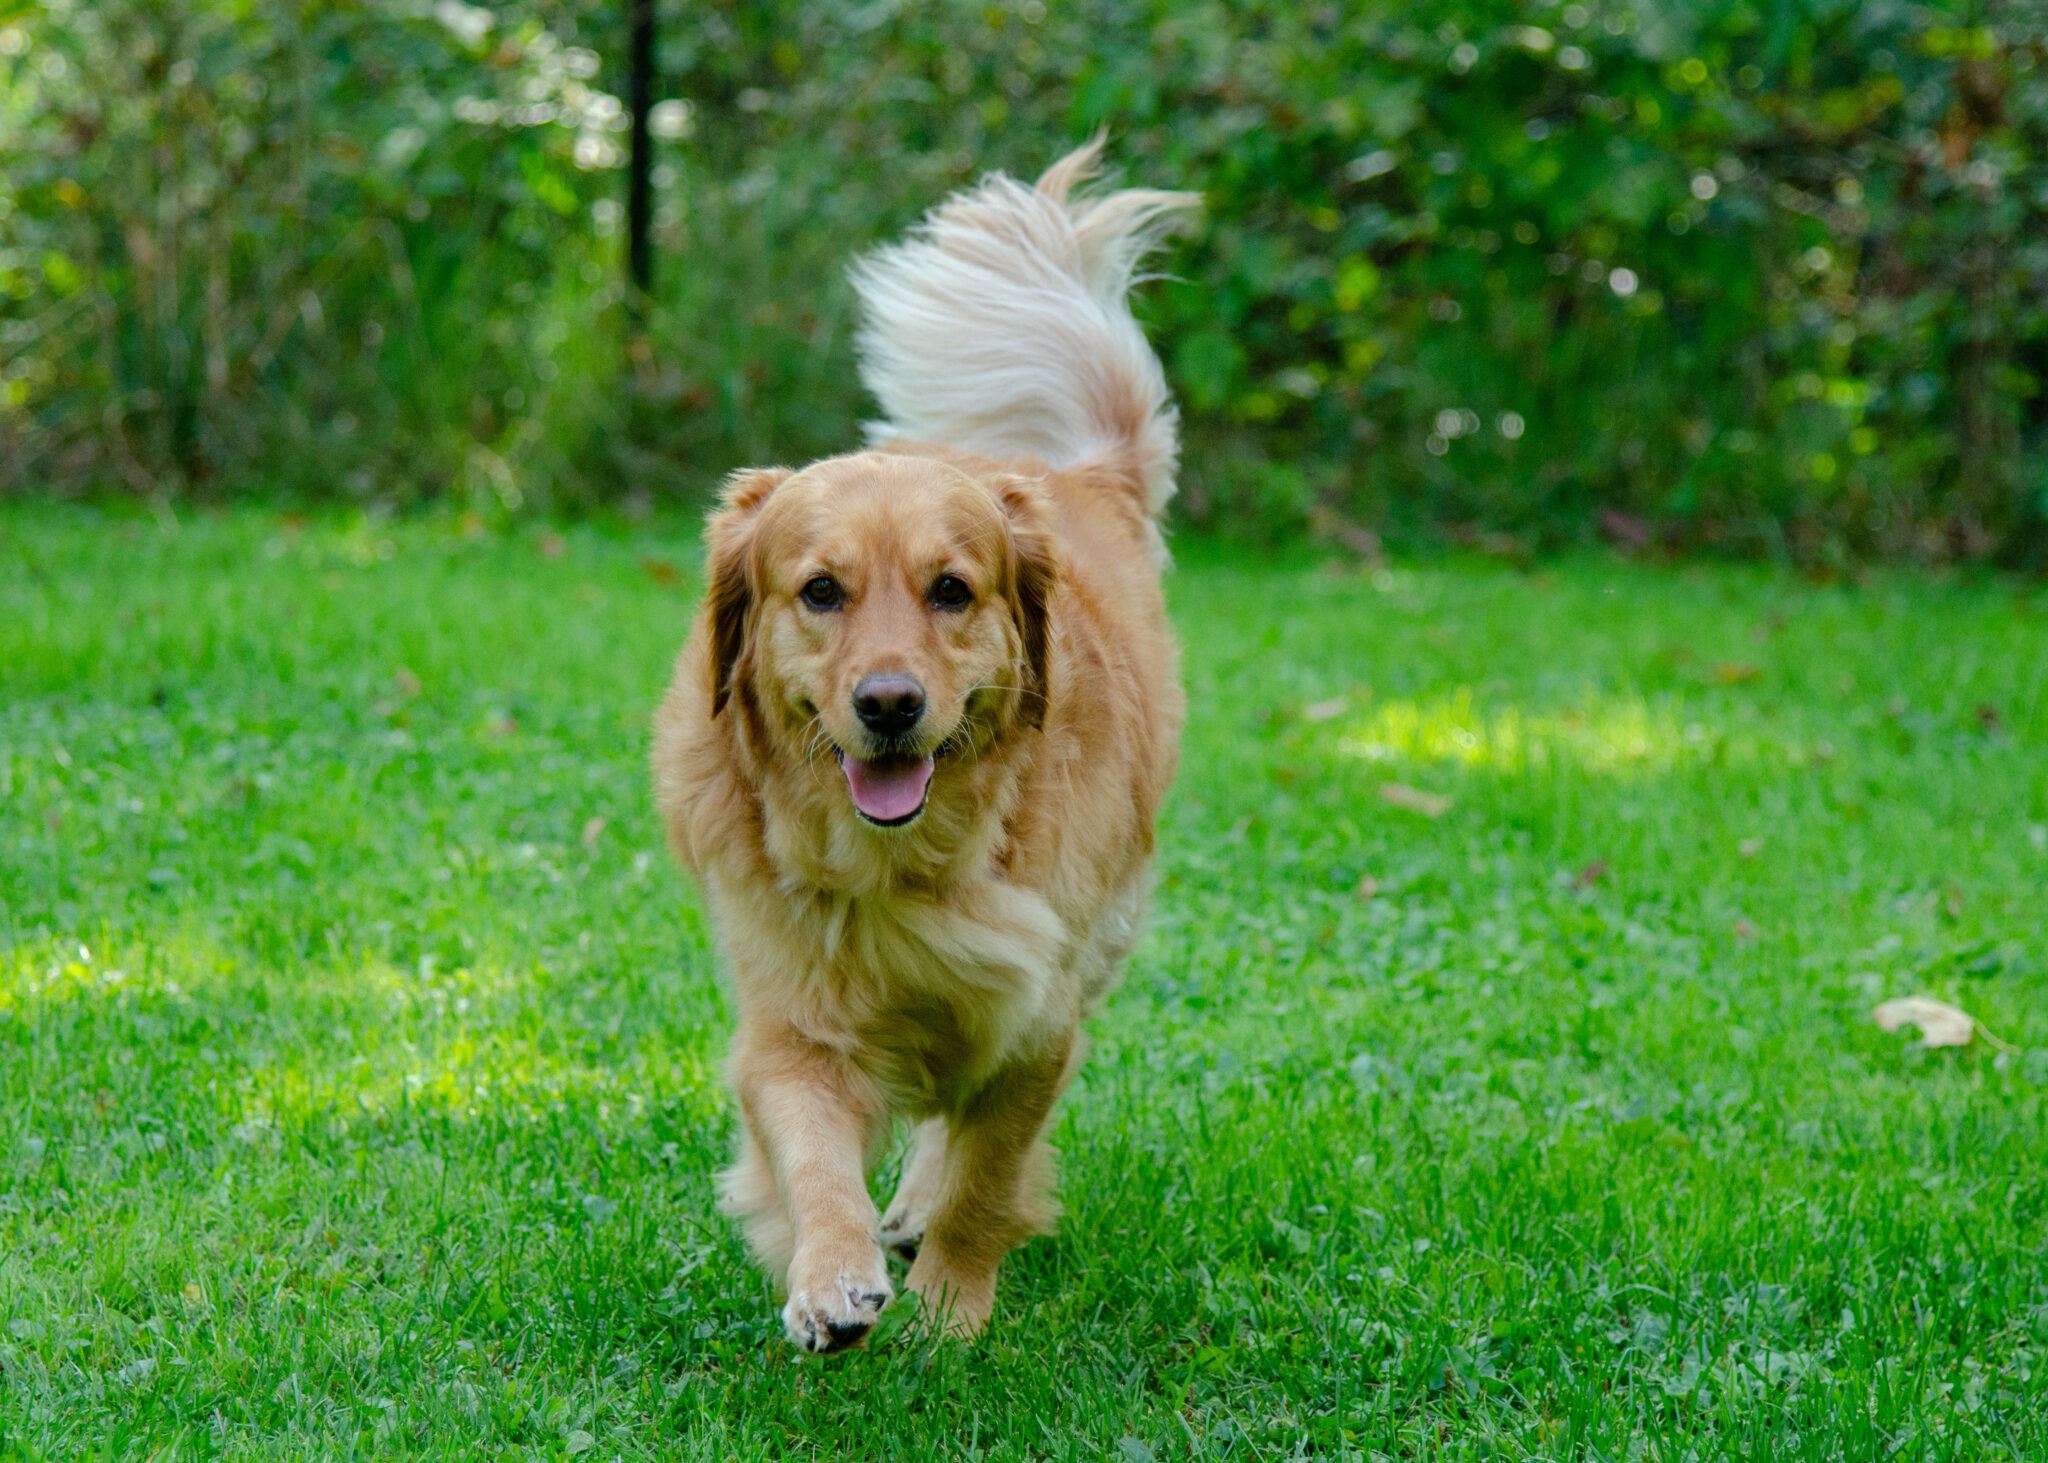 The First Annual WORLDWIDE Golden Retriever Believer's Cabin Fever Reliever